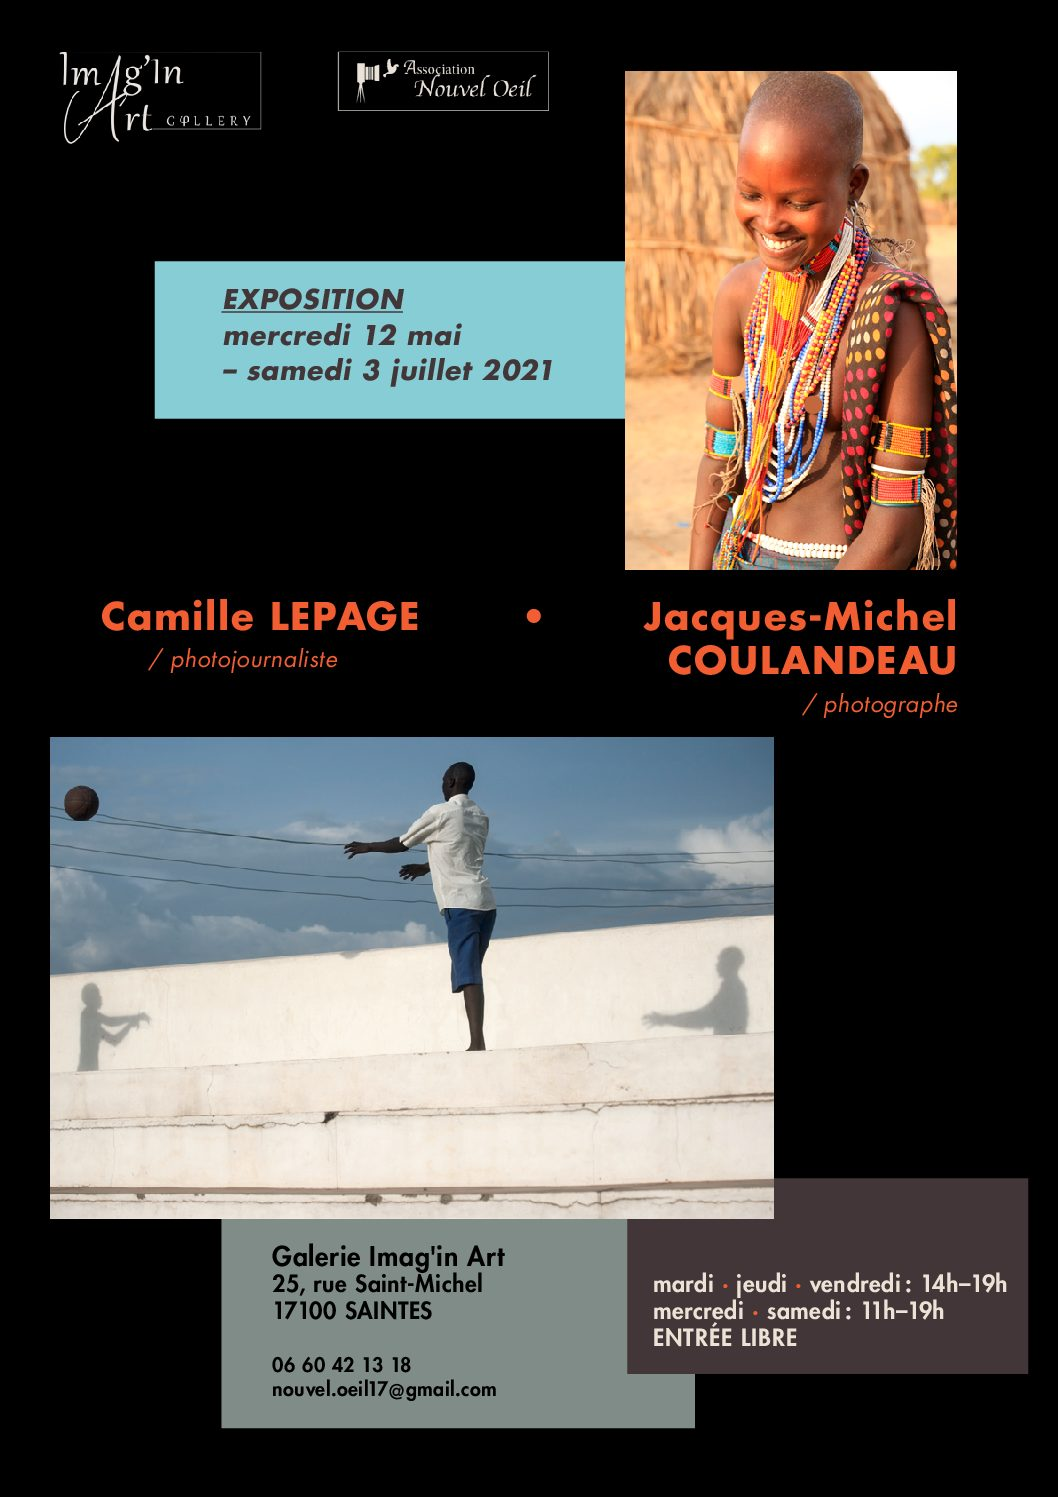 Exhibitions at the Imag'in Art gallery in Saintes – France